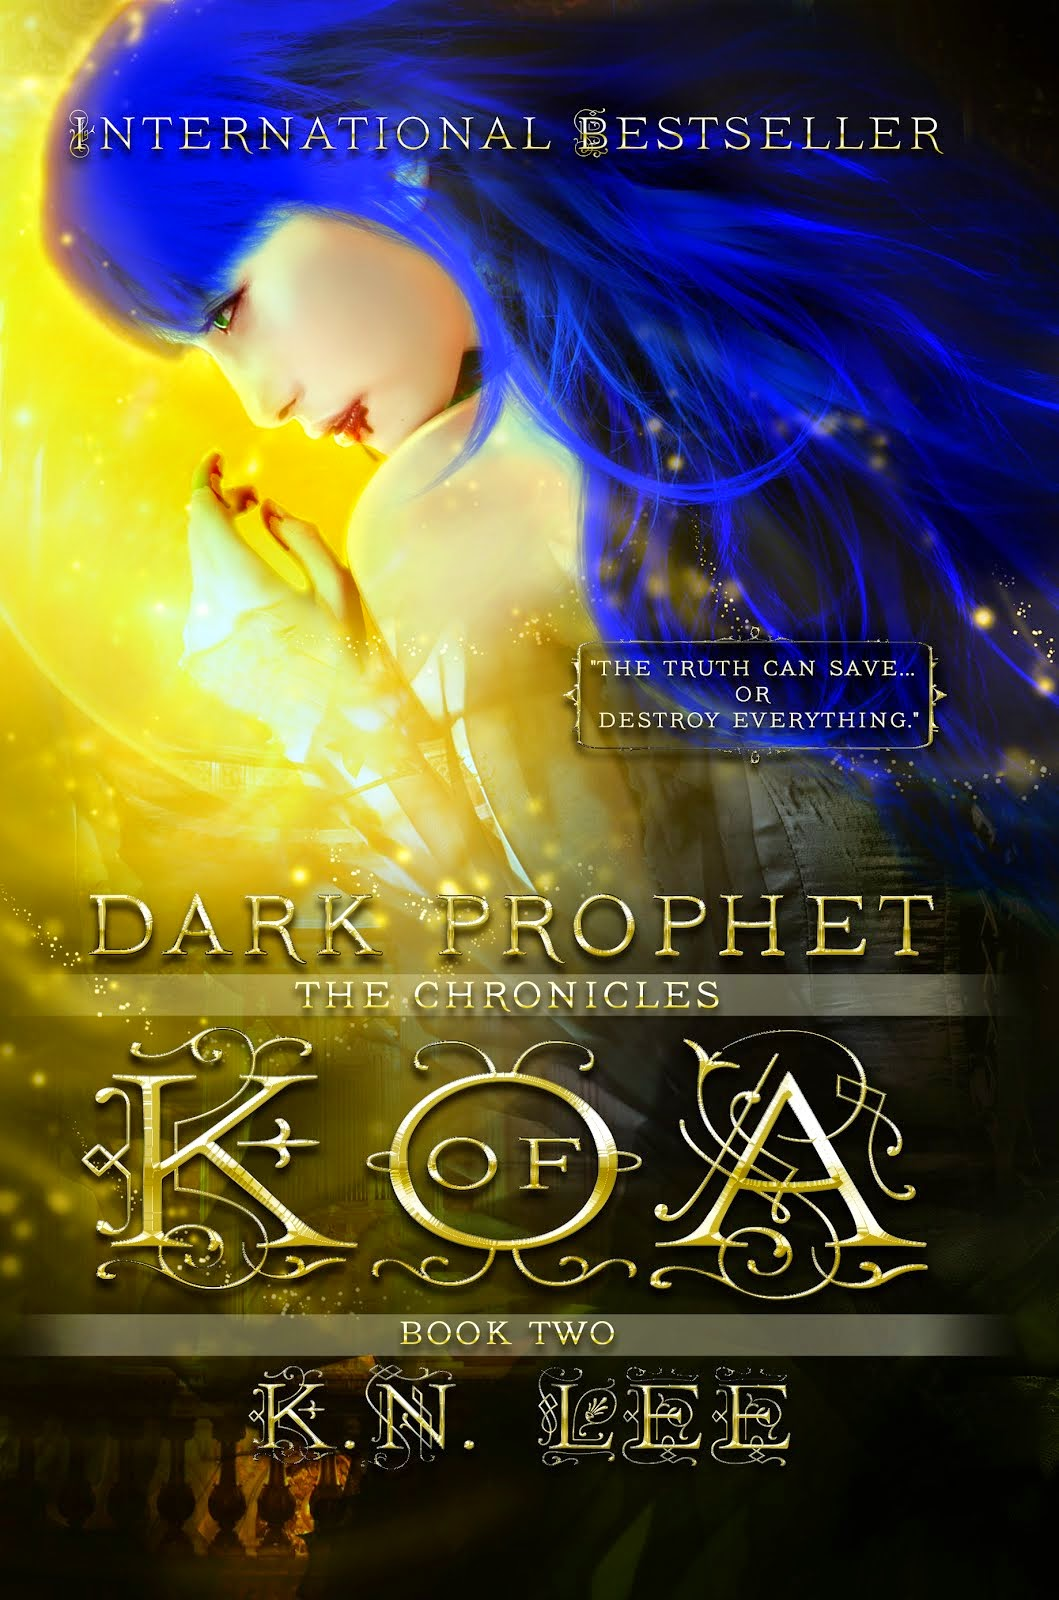 The Chronicles of Koa: Dark Prophet